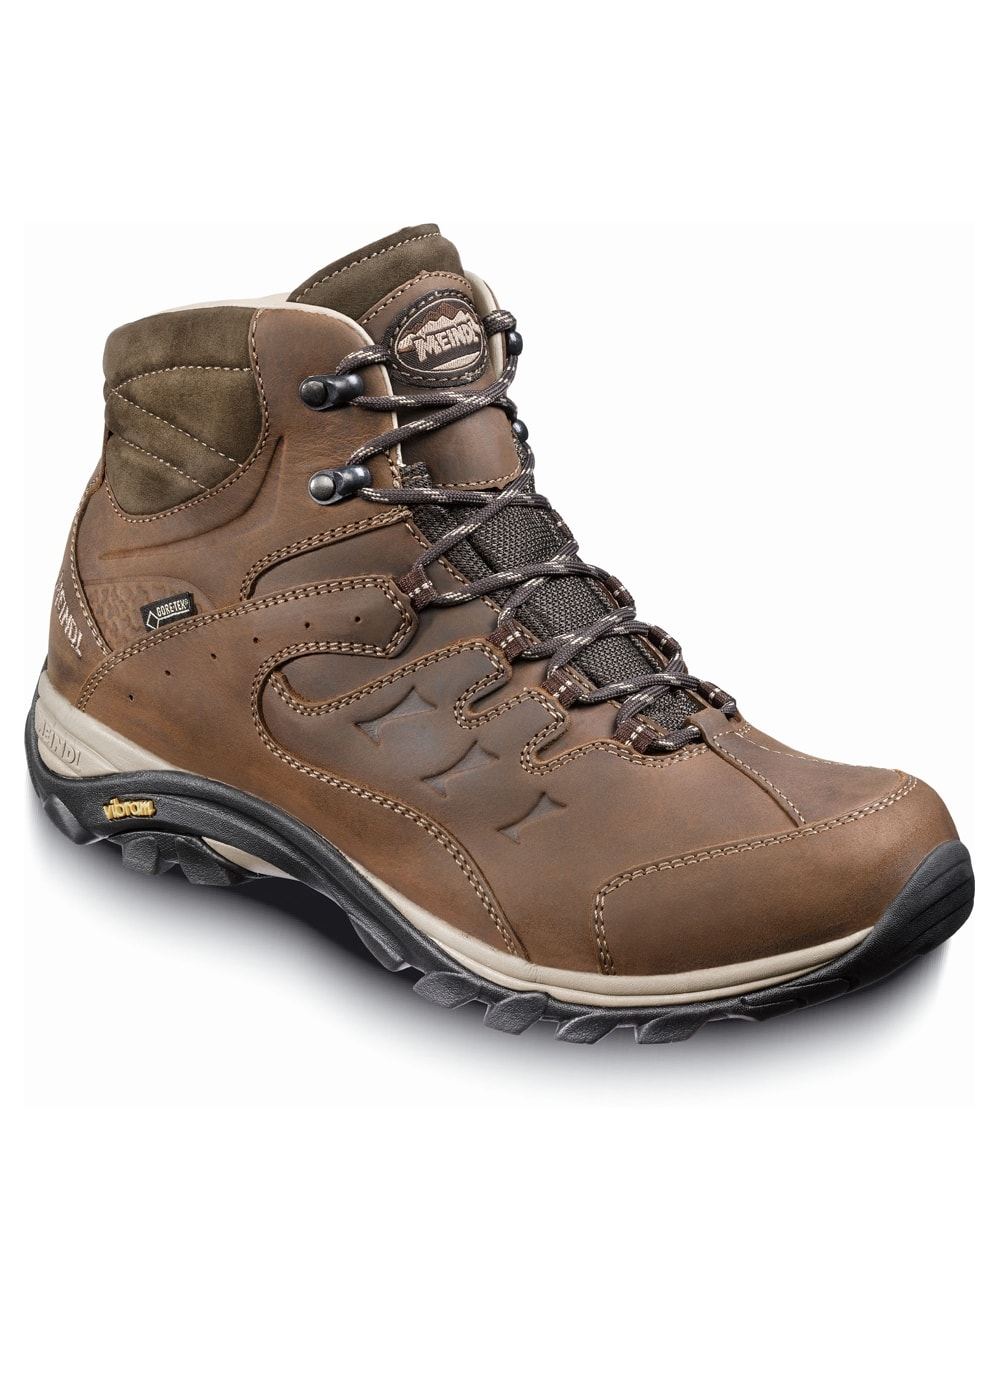 83892739ea6 Meindl Caracas Mid GTX Boots - Mens from A Hume UK